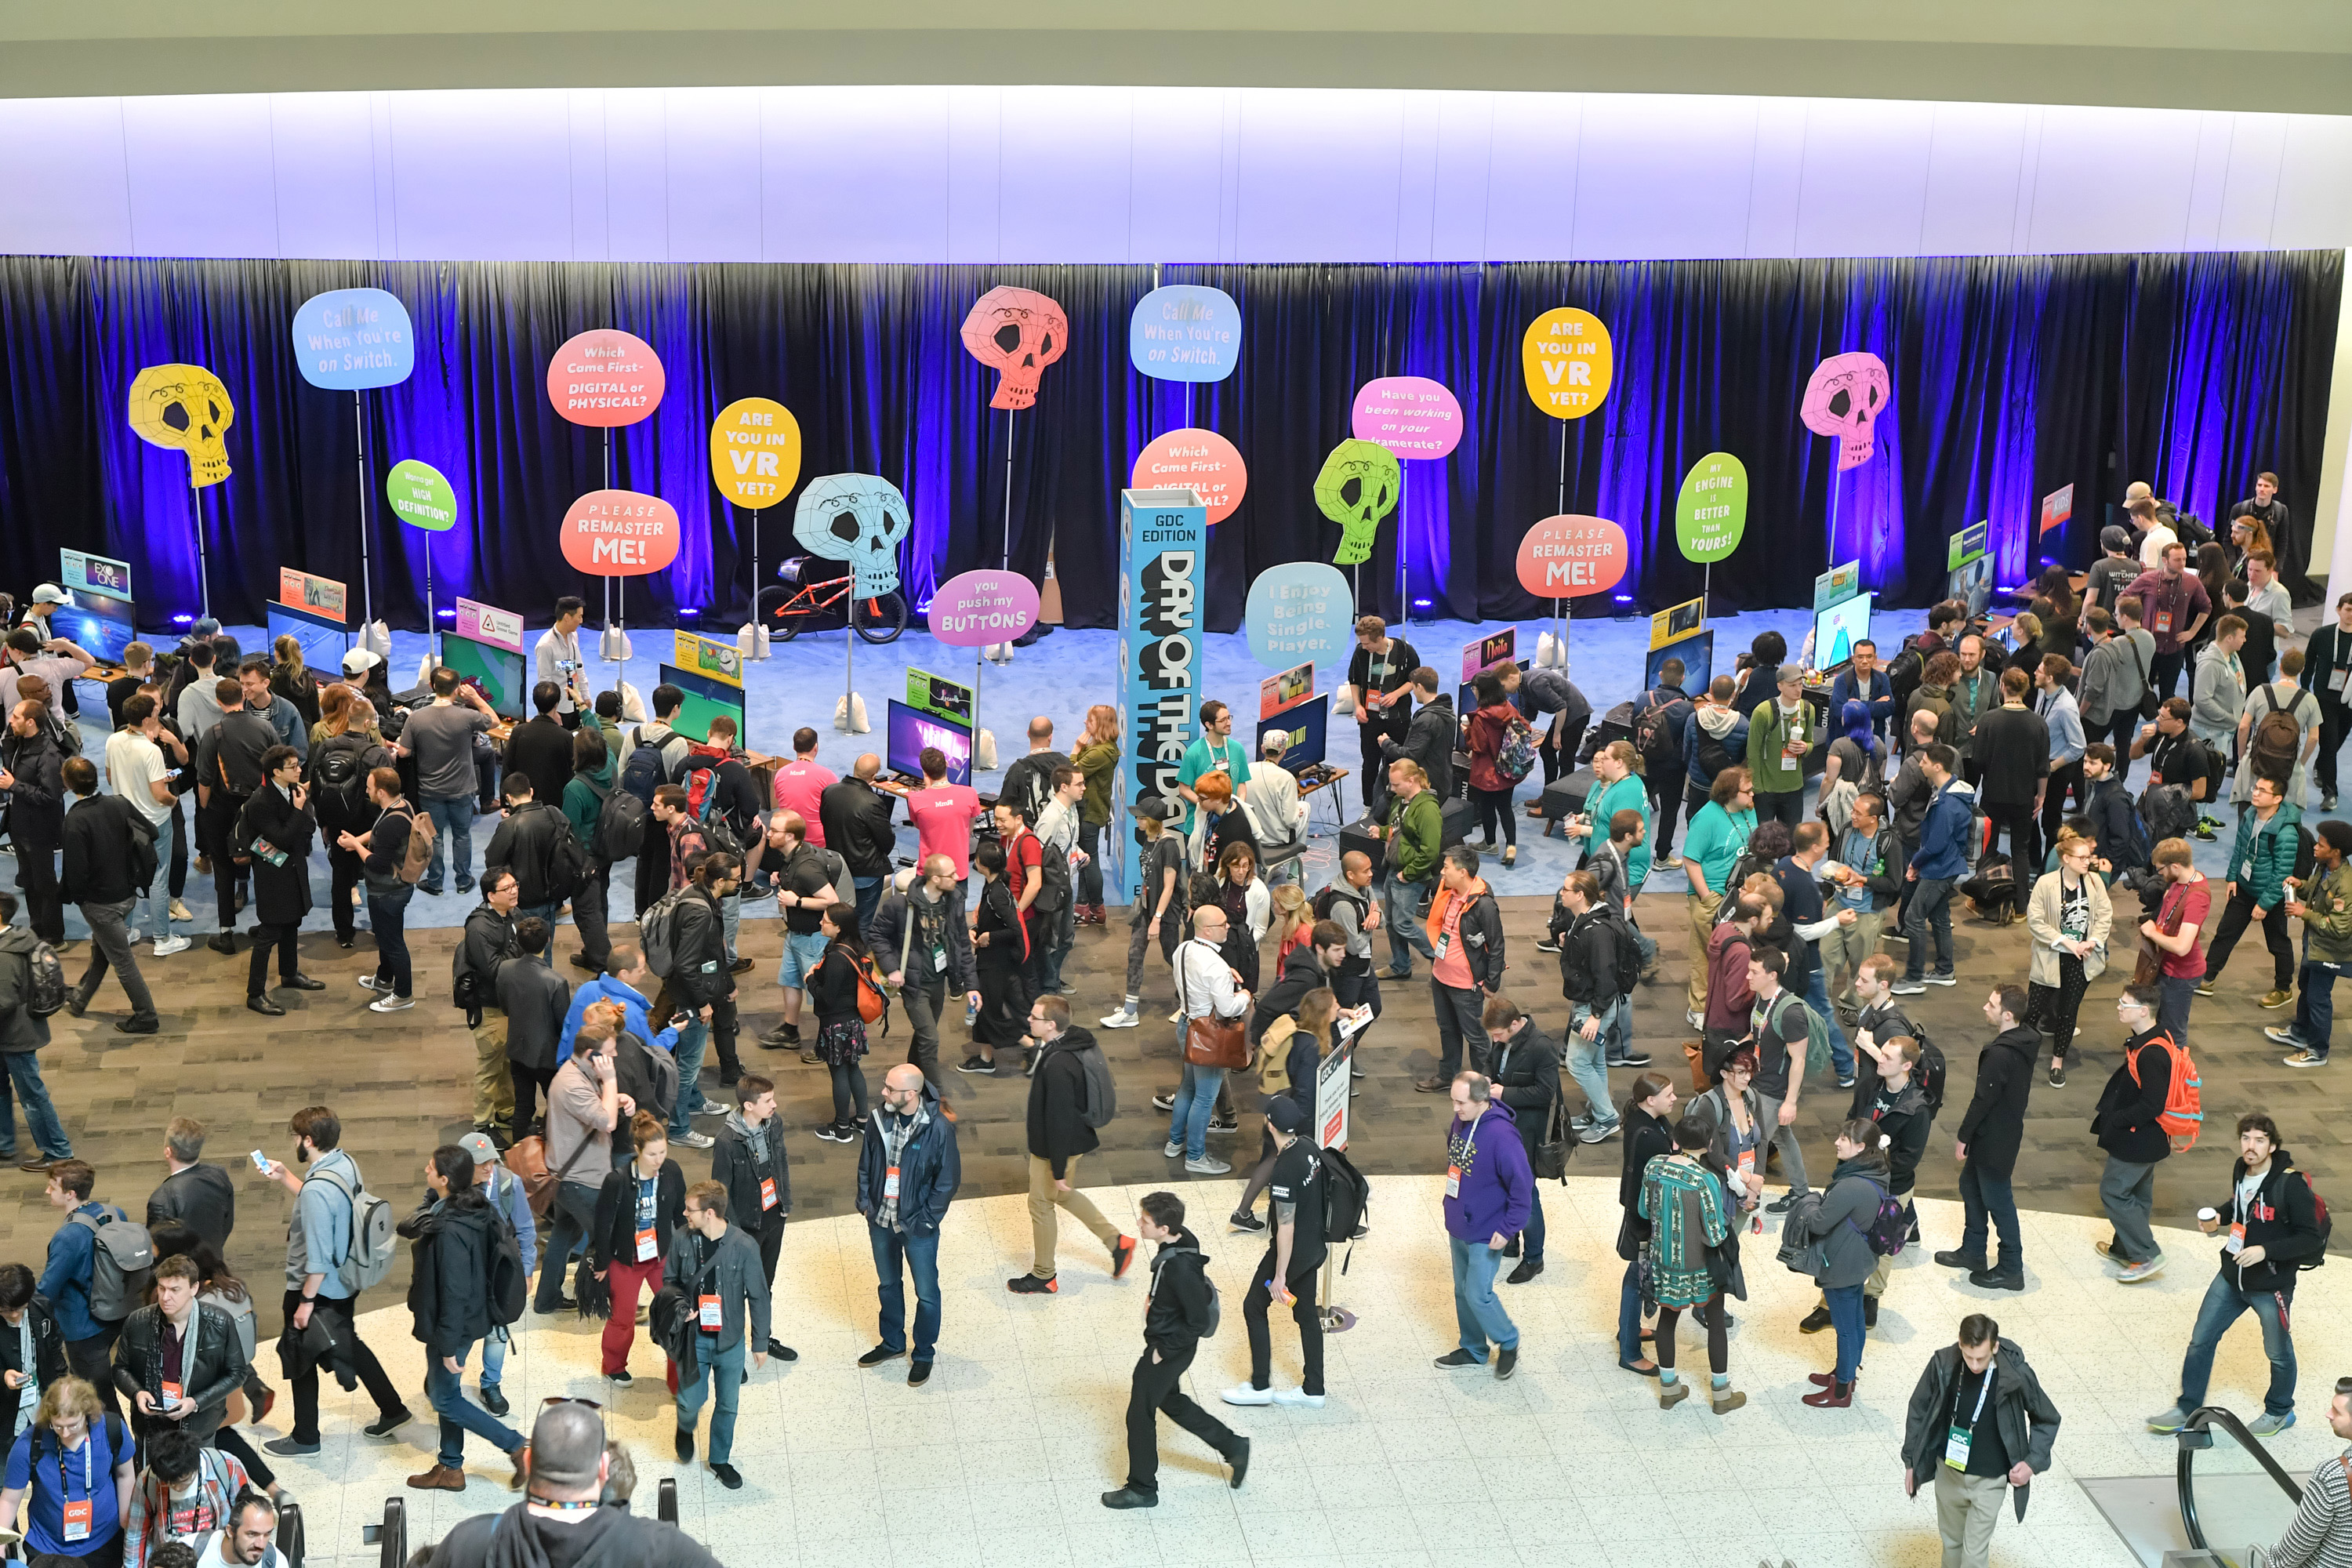 Photograph of crowd at Game Developers Conference